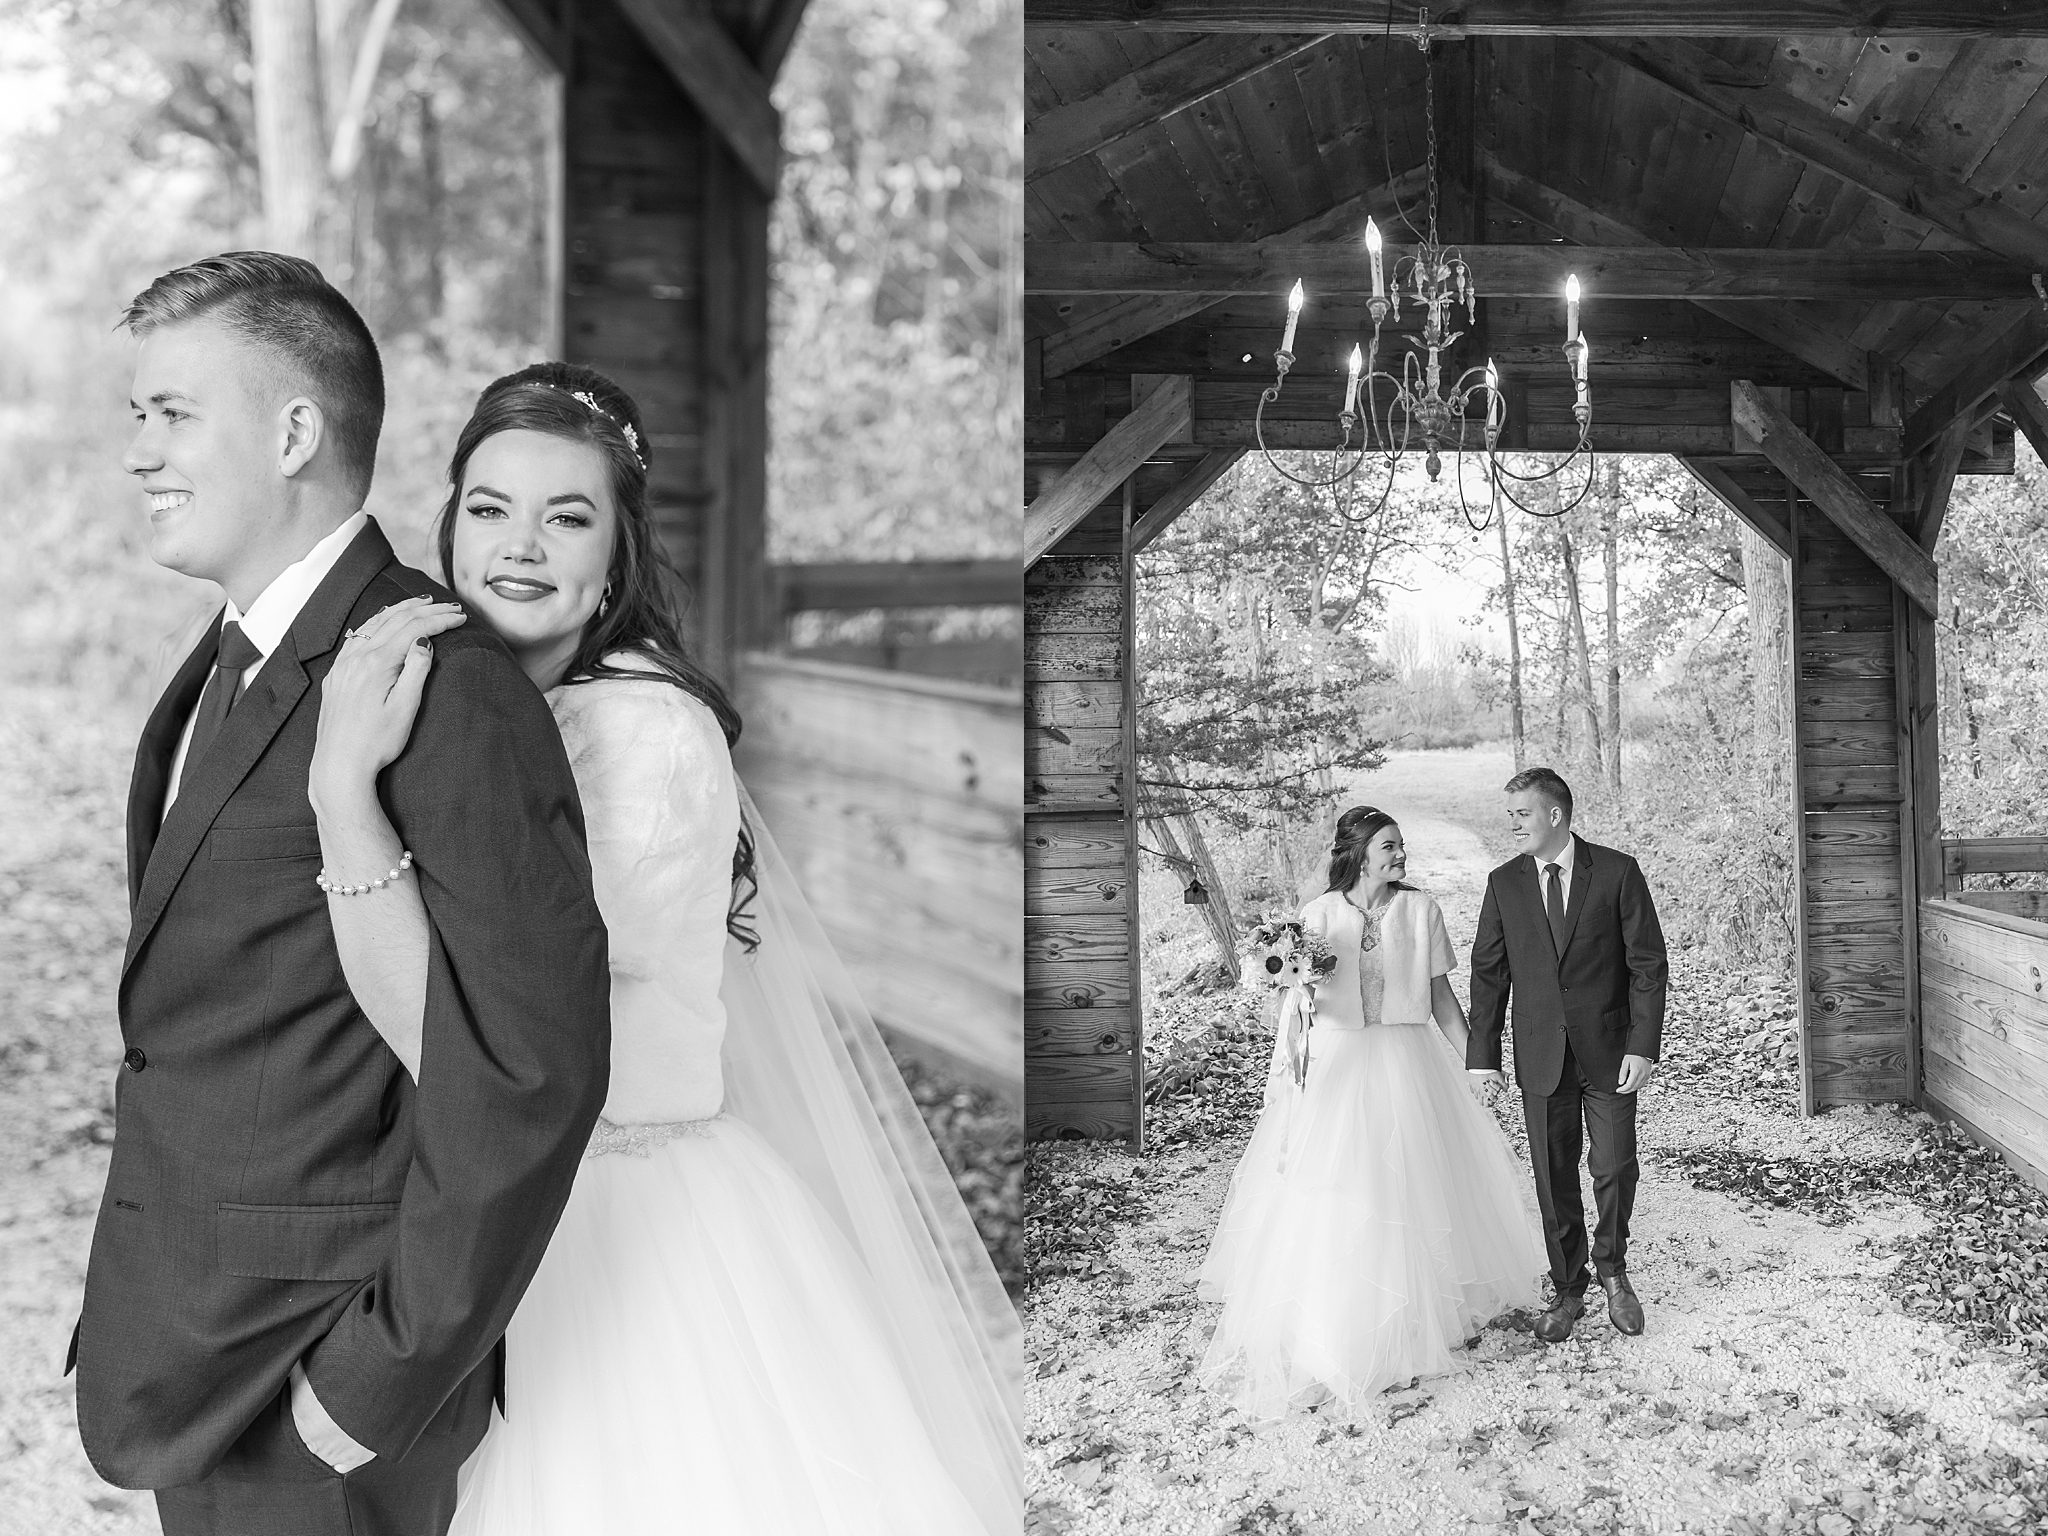 rustic-whimsical-wedding-photos-the-vale-royal-barn-in-fenton-michigan-by-courtney-carolyn-photography_0048.jpg